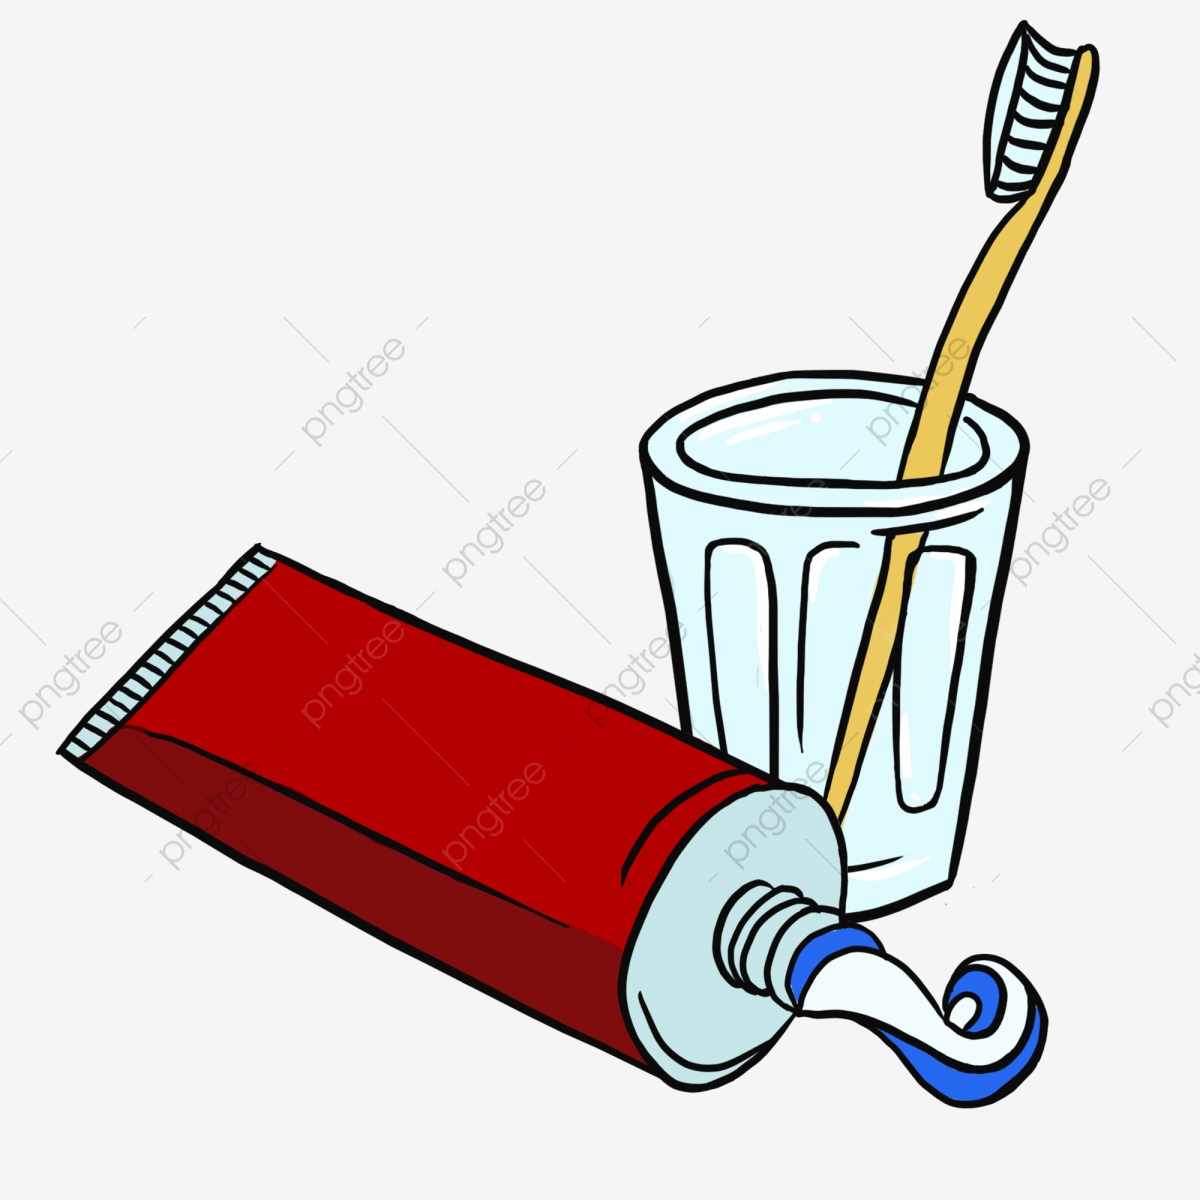 Cartoon toothbrush PNG and Clipart | Toothbrush clipart, Brush teeth clipart,  Brushing teeth